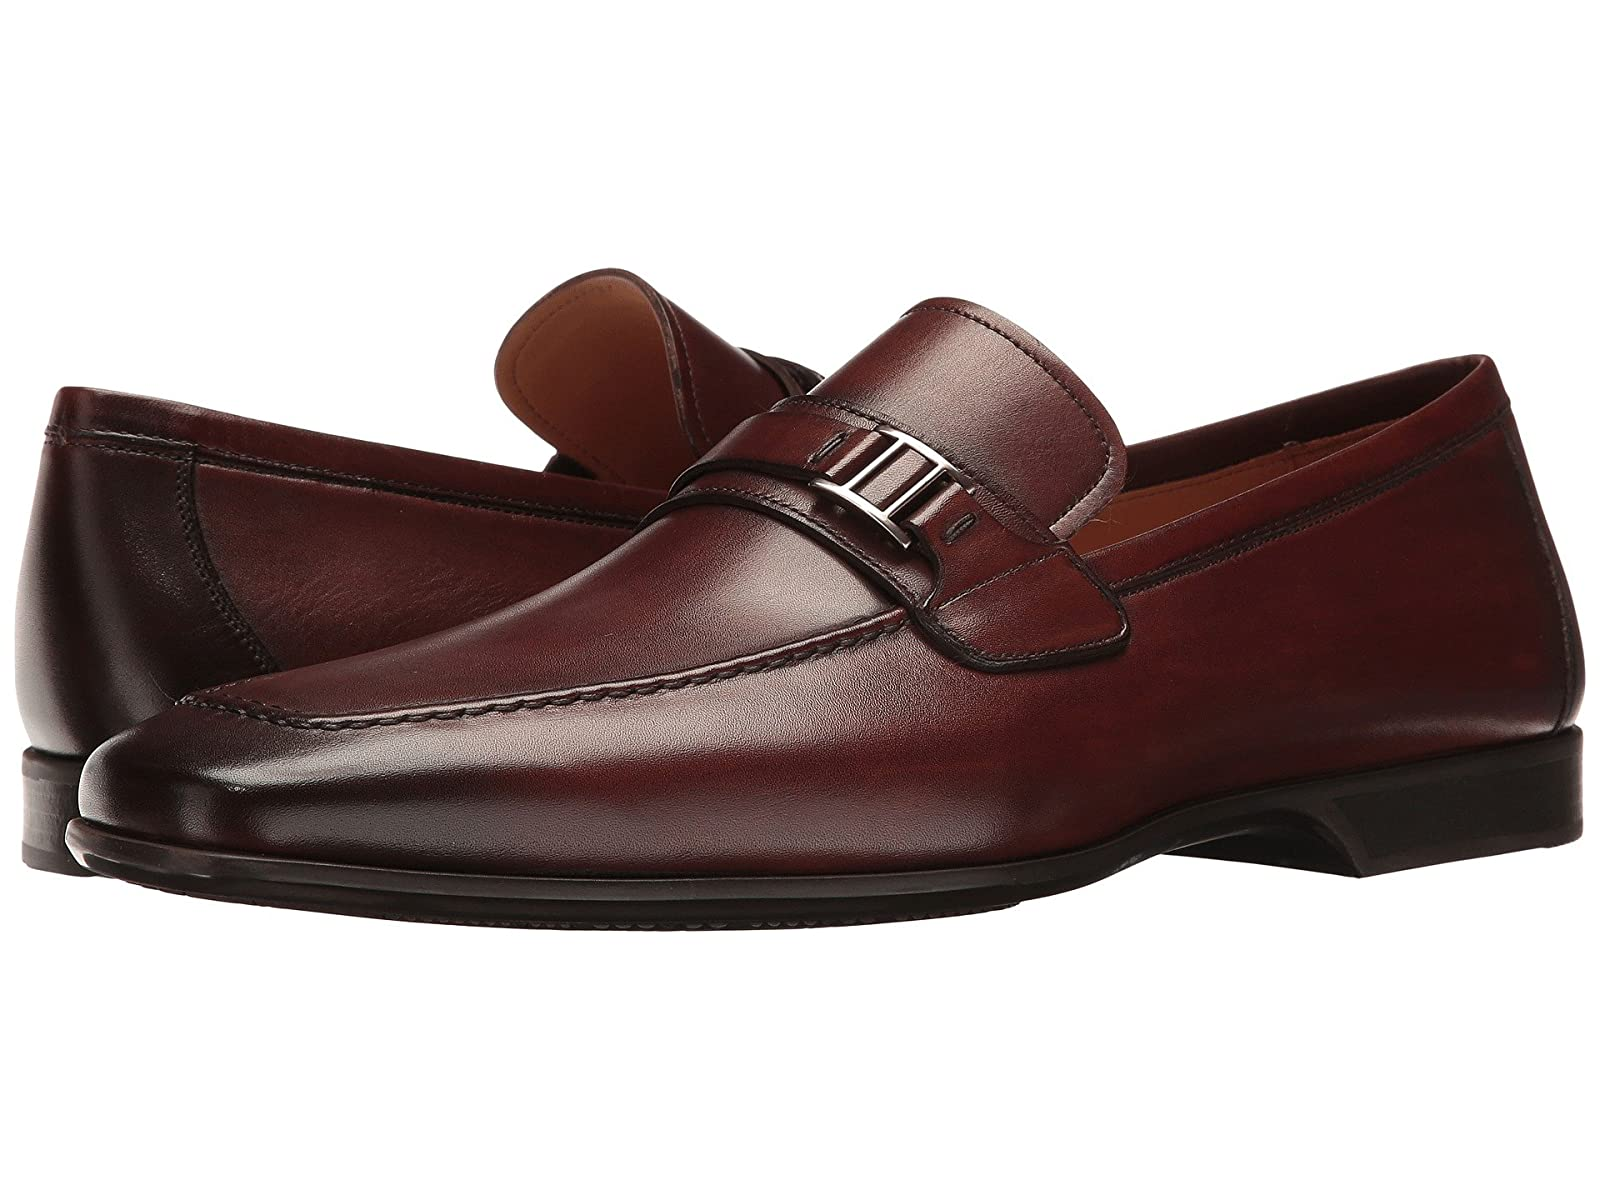 Magnanni RenzoAtmospheric grades have affordable shoes